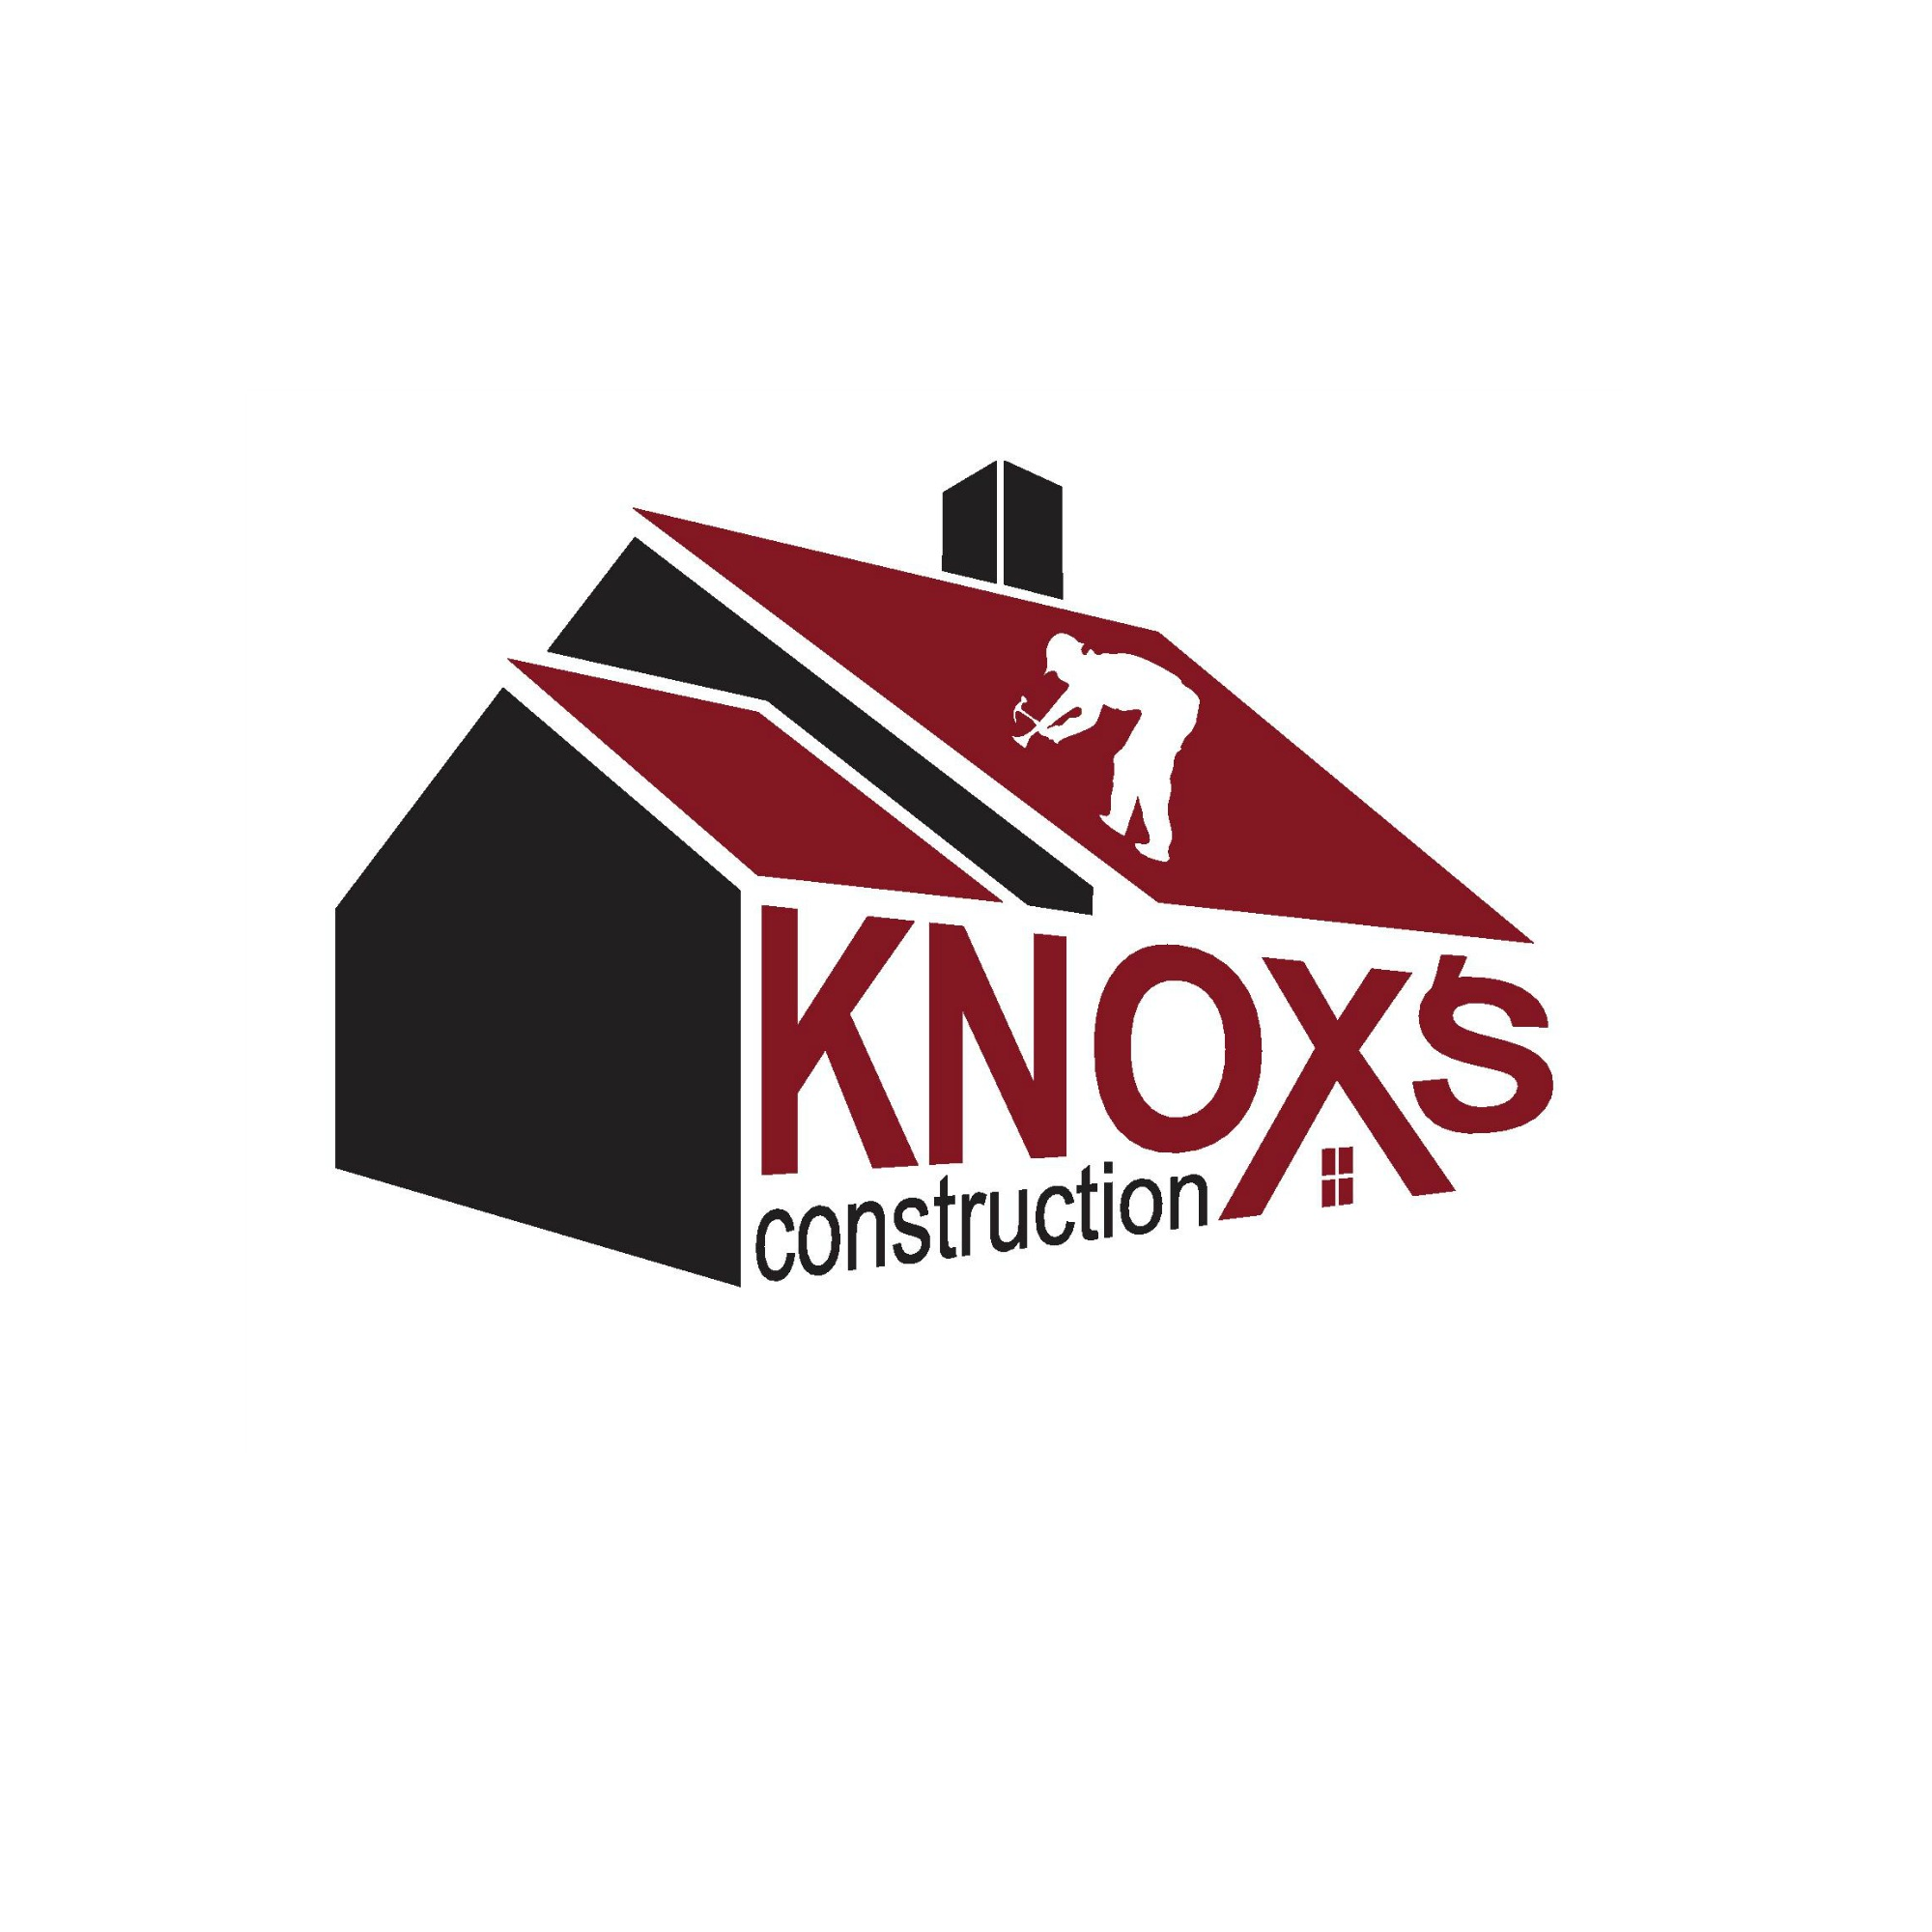 Knox's Construction